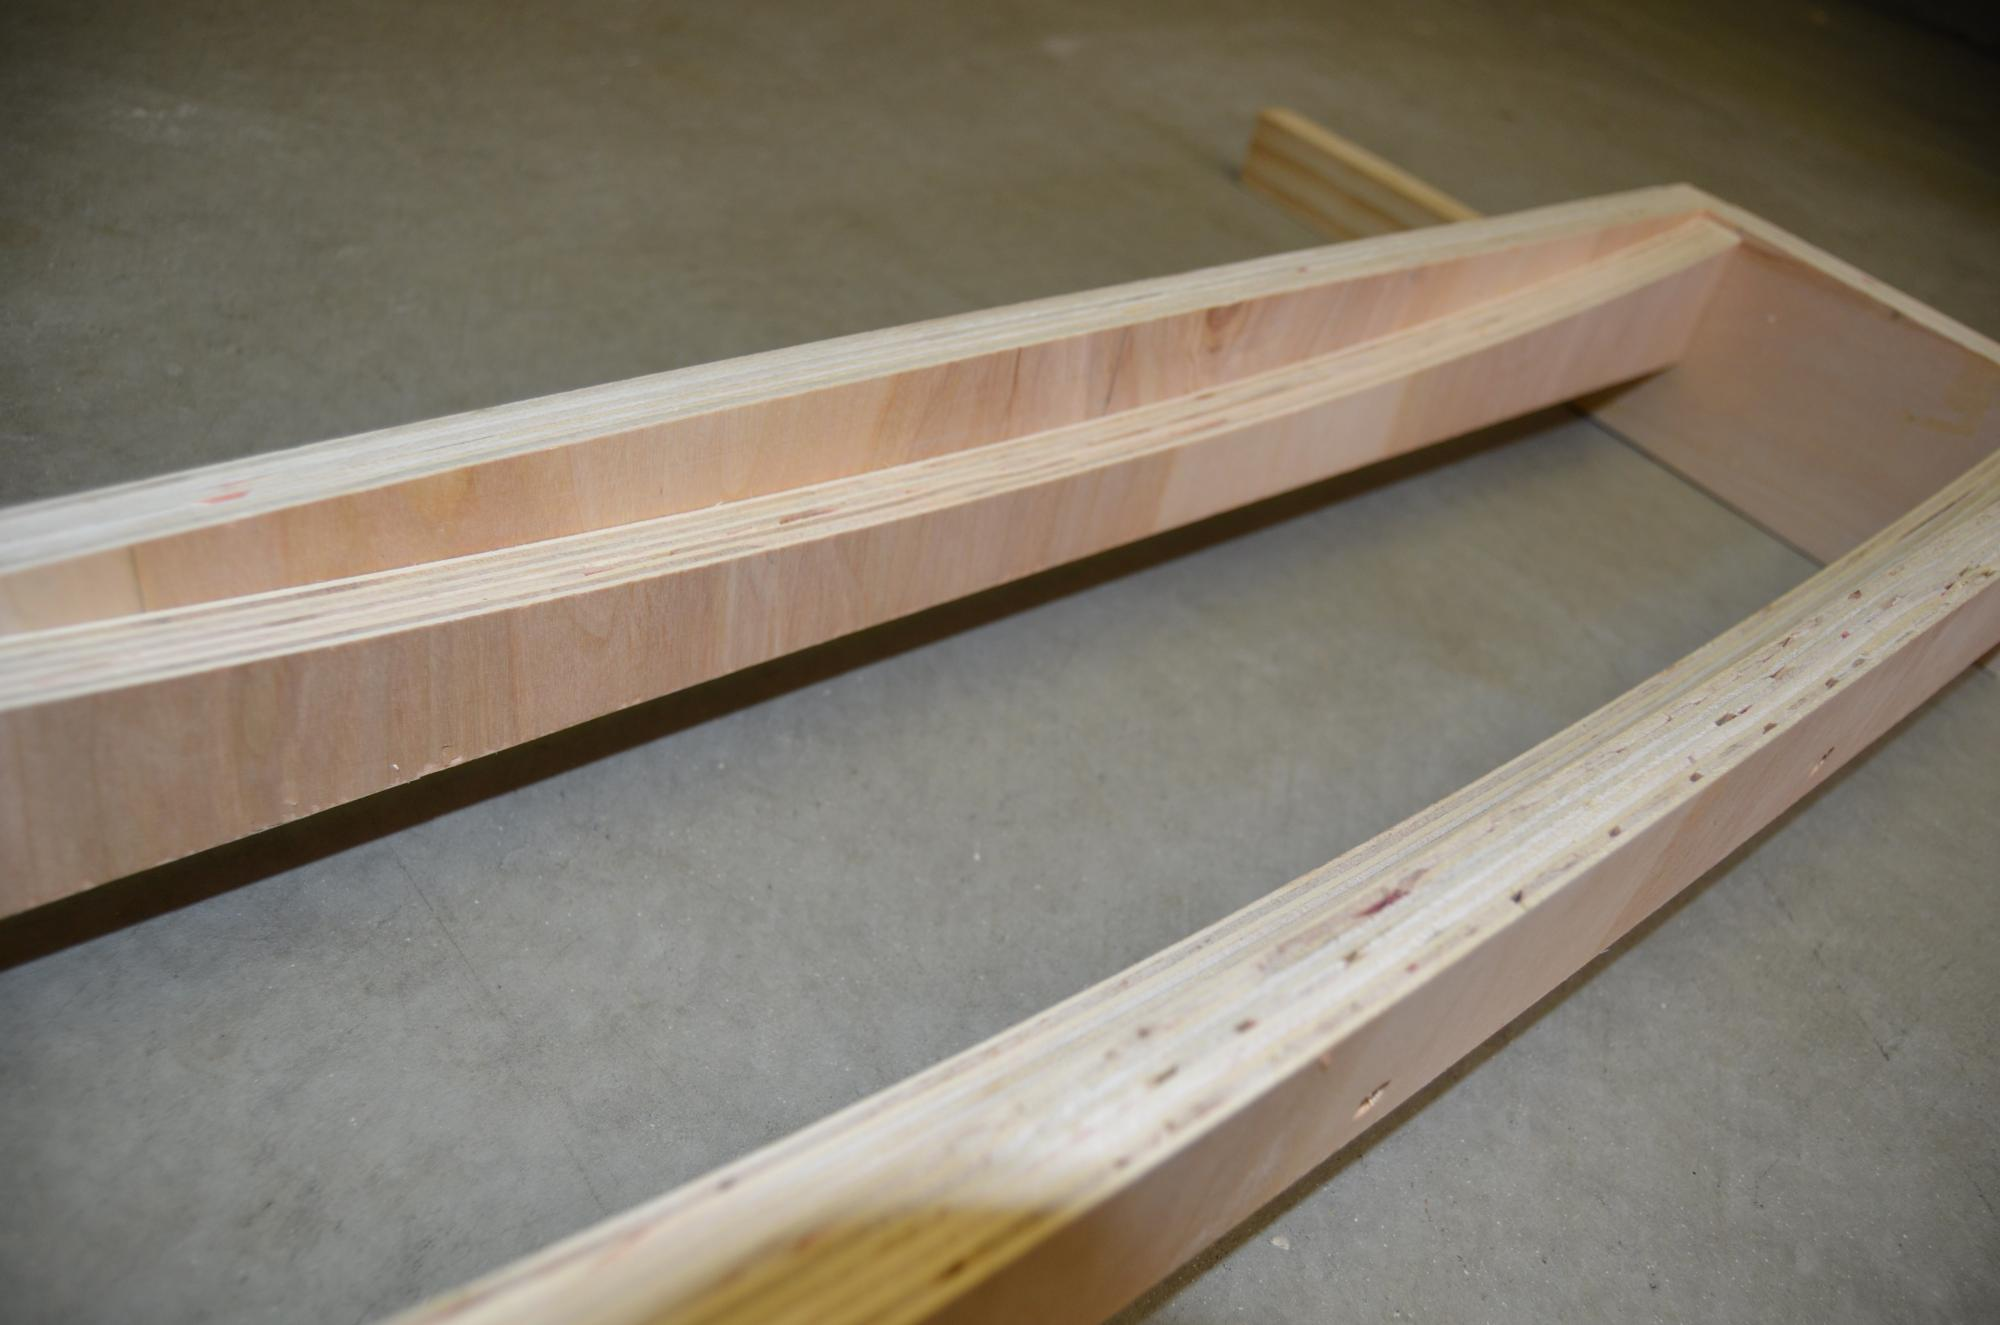 Has Anyone Had Any Luck Building A Jig To Make A Saddle